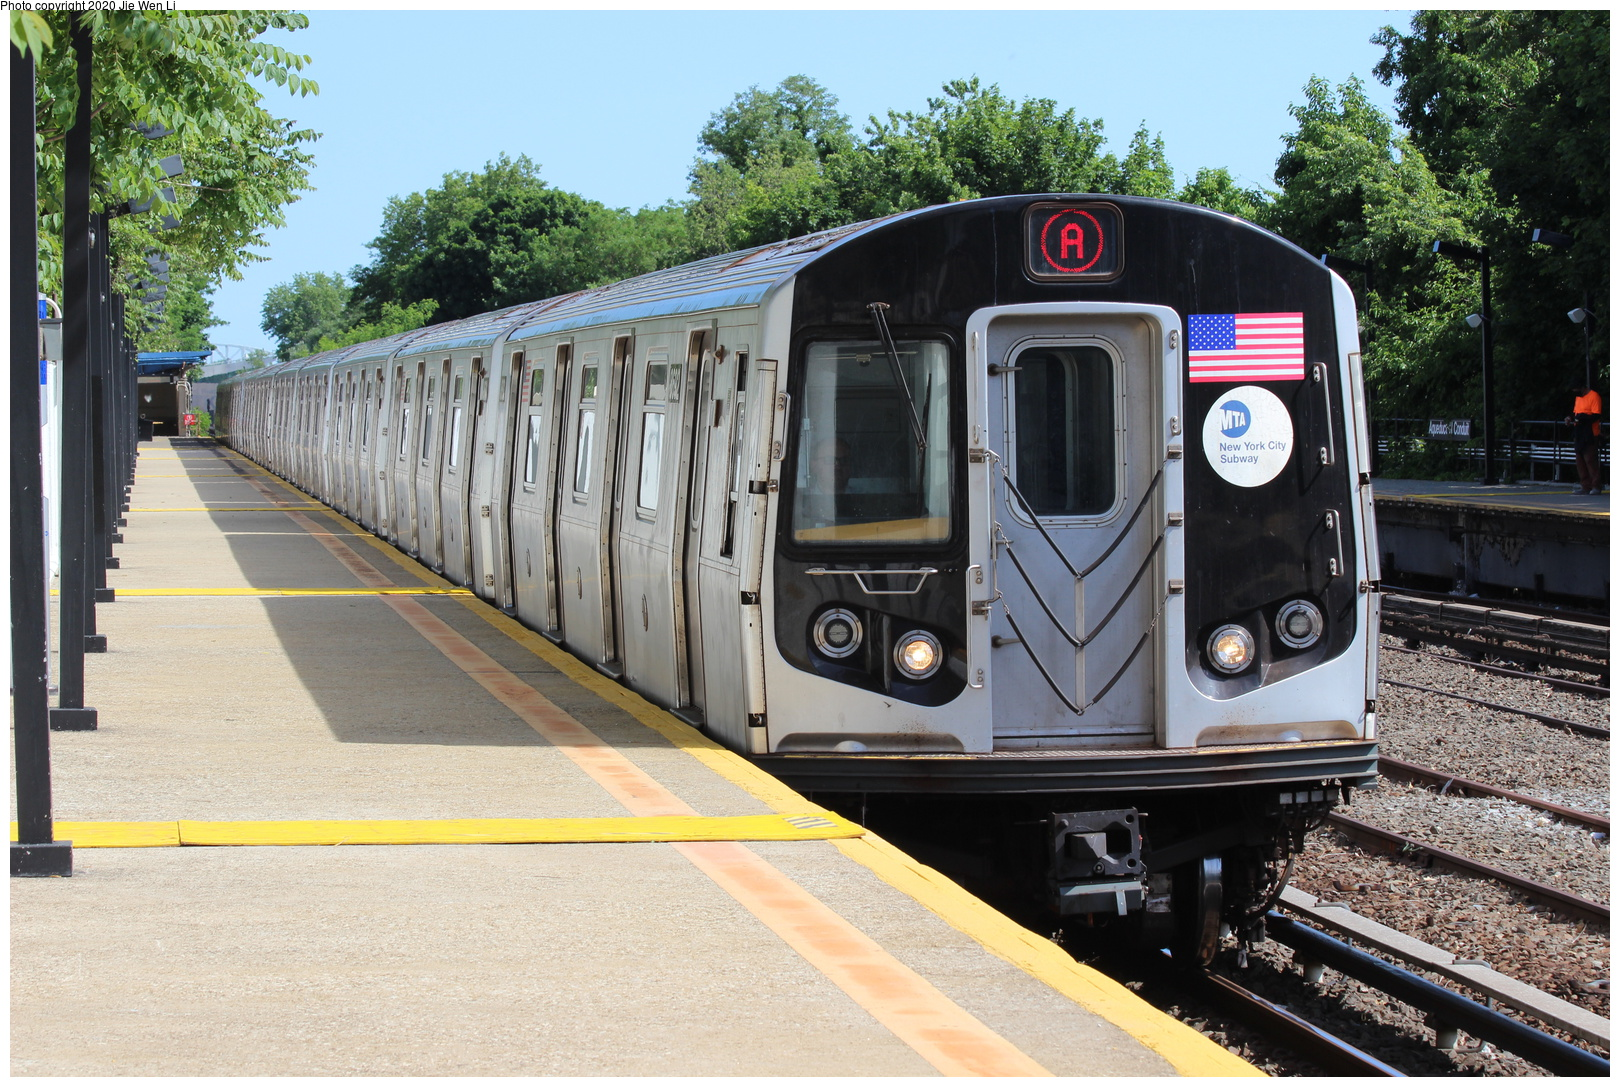 (261k, 1044x1037)<br><b>Country:</b> United States<br><b>City:</b> New York<br><b>System:</b> New York City Transit<br><b>Line:</b> BMT Canarsie Line<br><b>Location:</b> Broadway Junction <br><b>Car:</b> BMT Multi  <br><b>Photo by:</b> Joel Shanus<br><b>Notes:</b> Lefferts (Fulton line) train at Bway Jct.<br><b>Viewed (this week/total):</b> 2 / 958